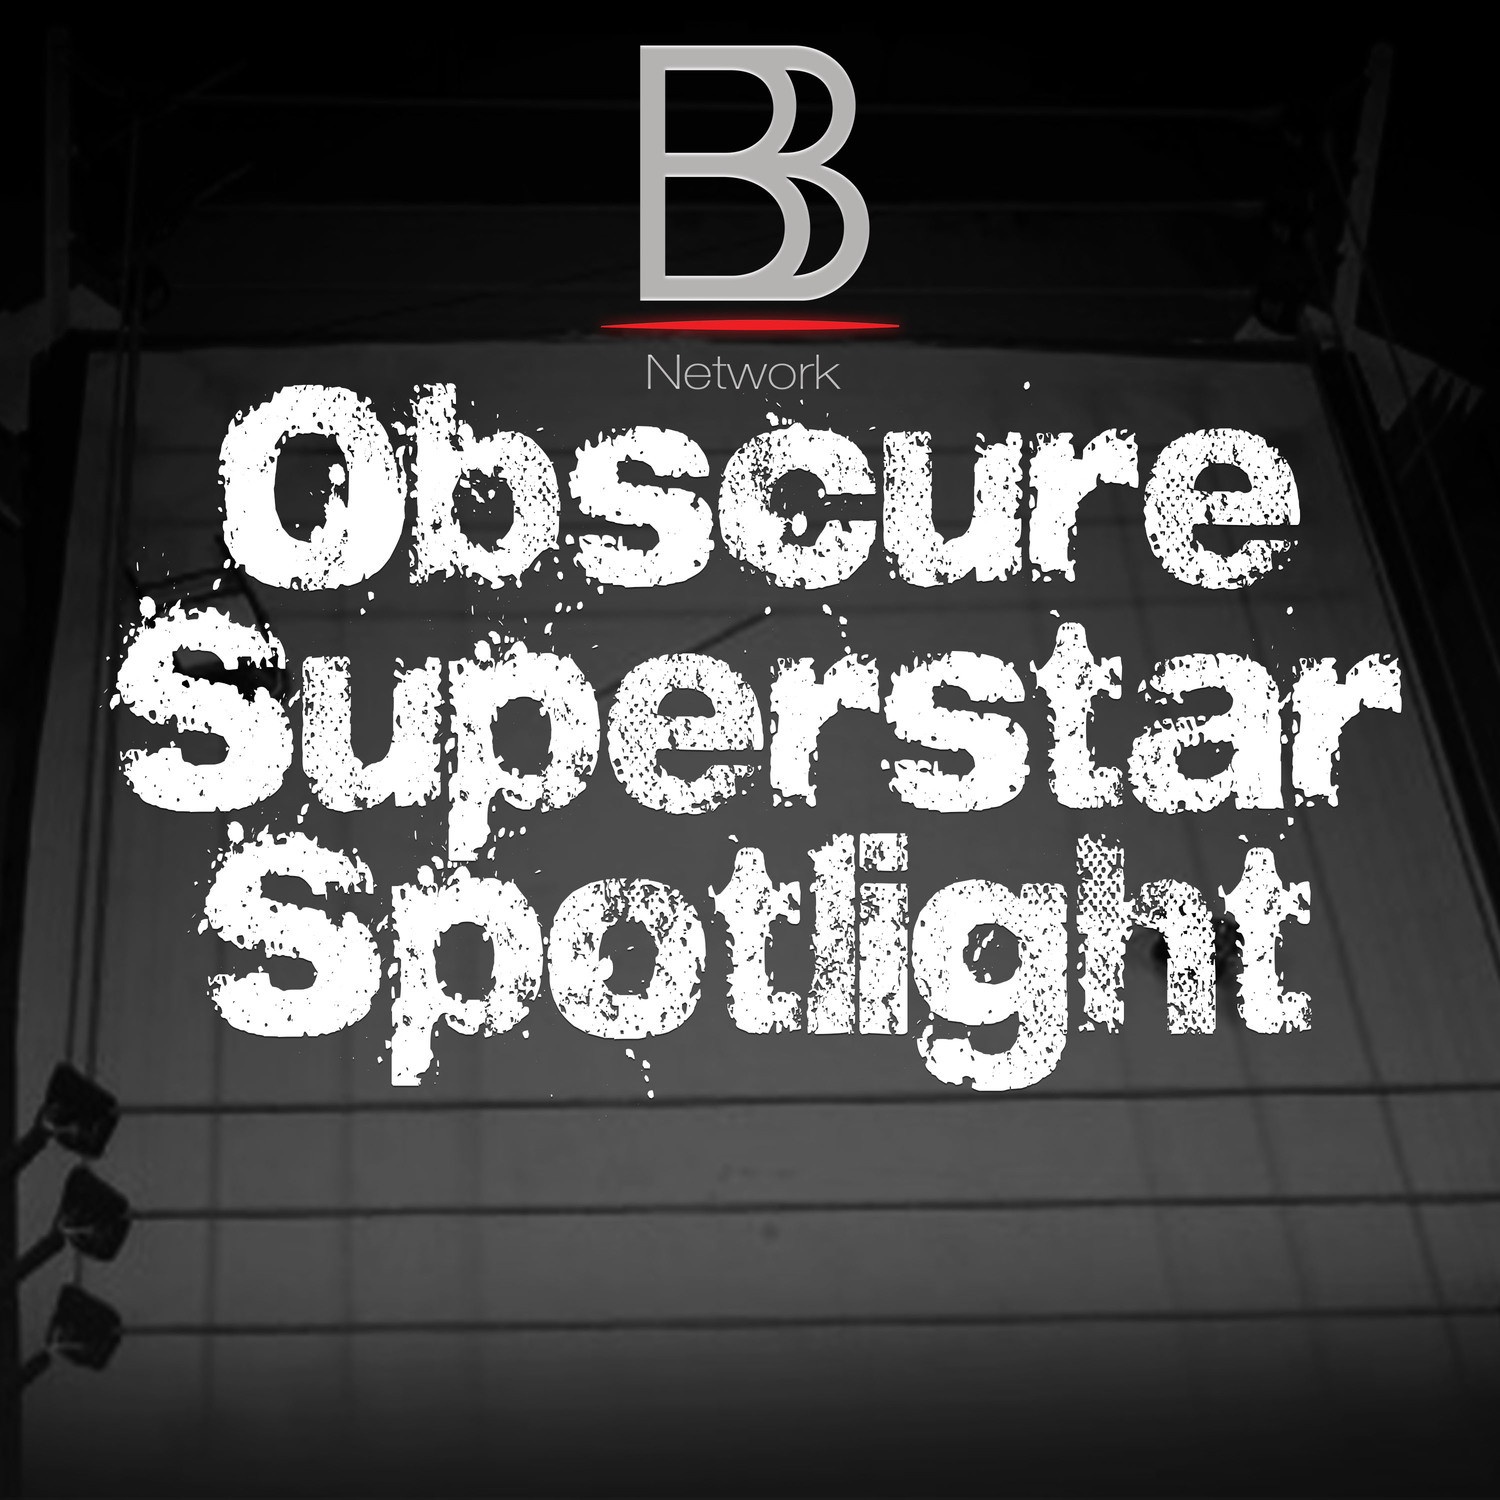 Obscure Superstar Spotlight - BBN